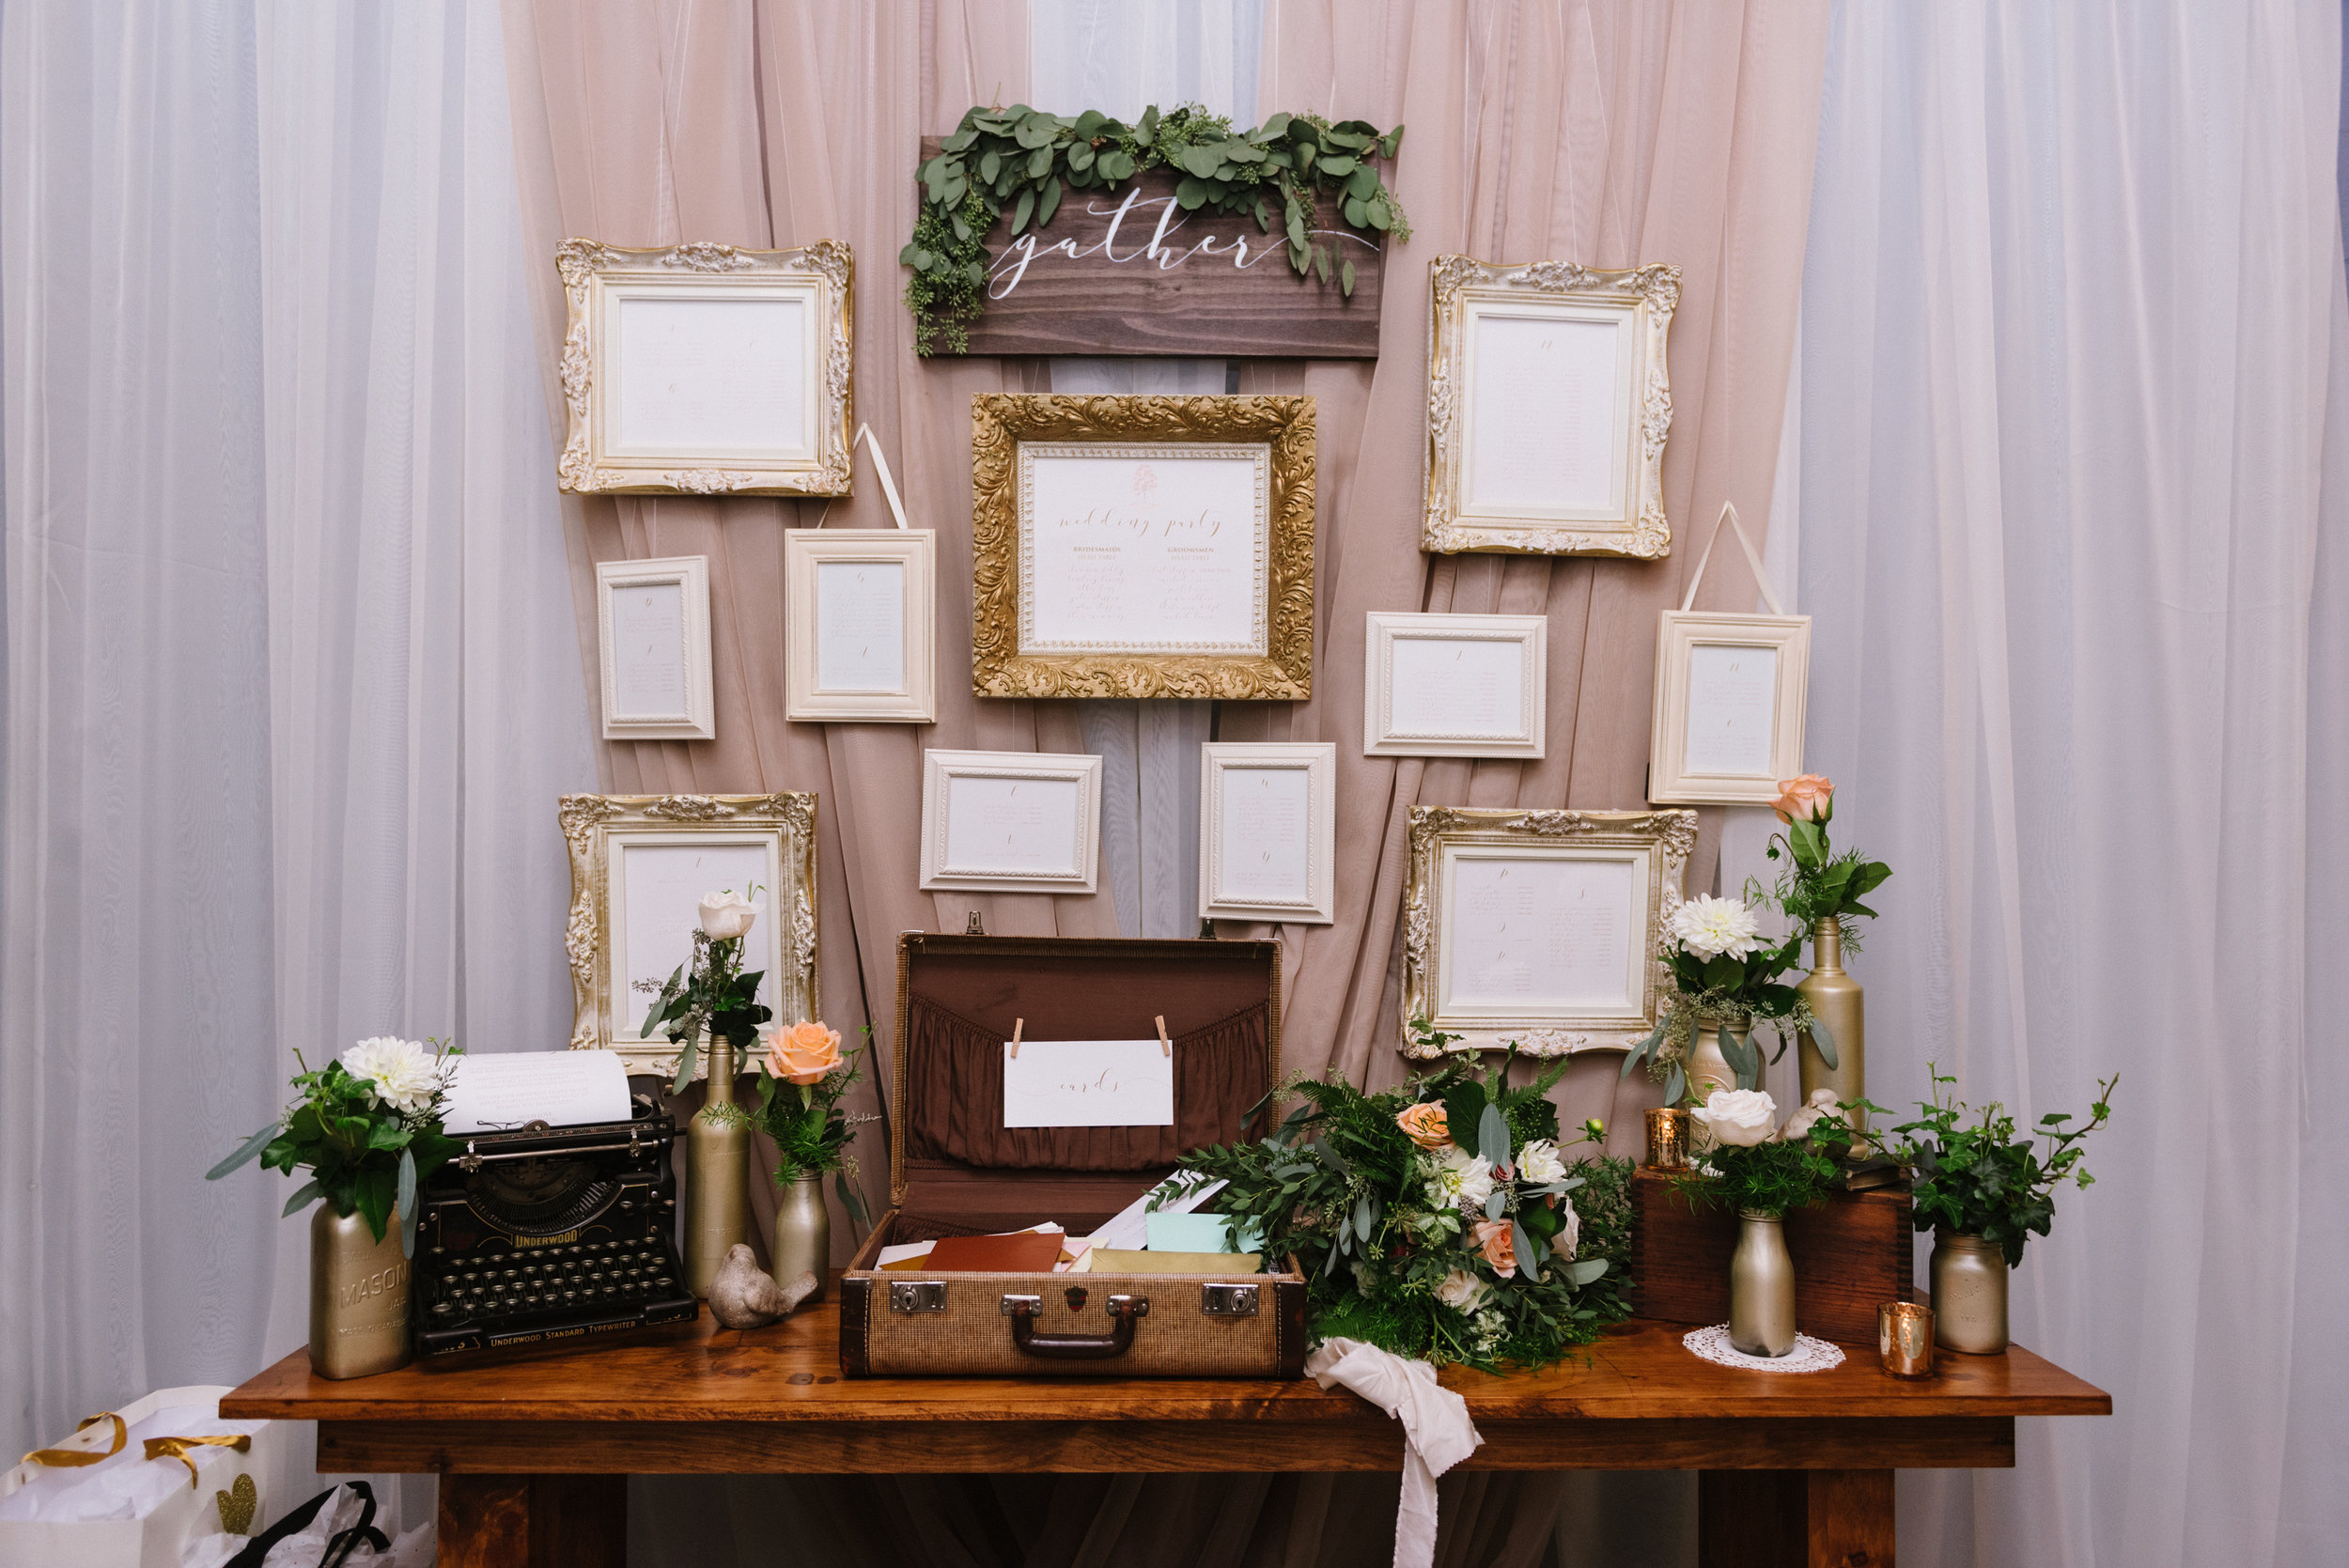 Seating plan display with metallic, vintage and wooden accents.   Venue:    St. Marys Golf & Country Club   . Decor & Styling:    Above & Beyond Event Design   . Photography:    Erin Leydon   .